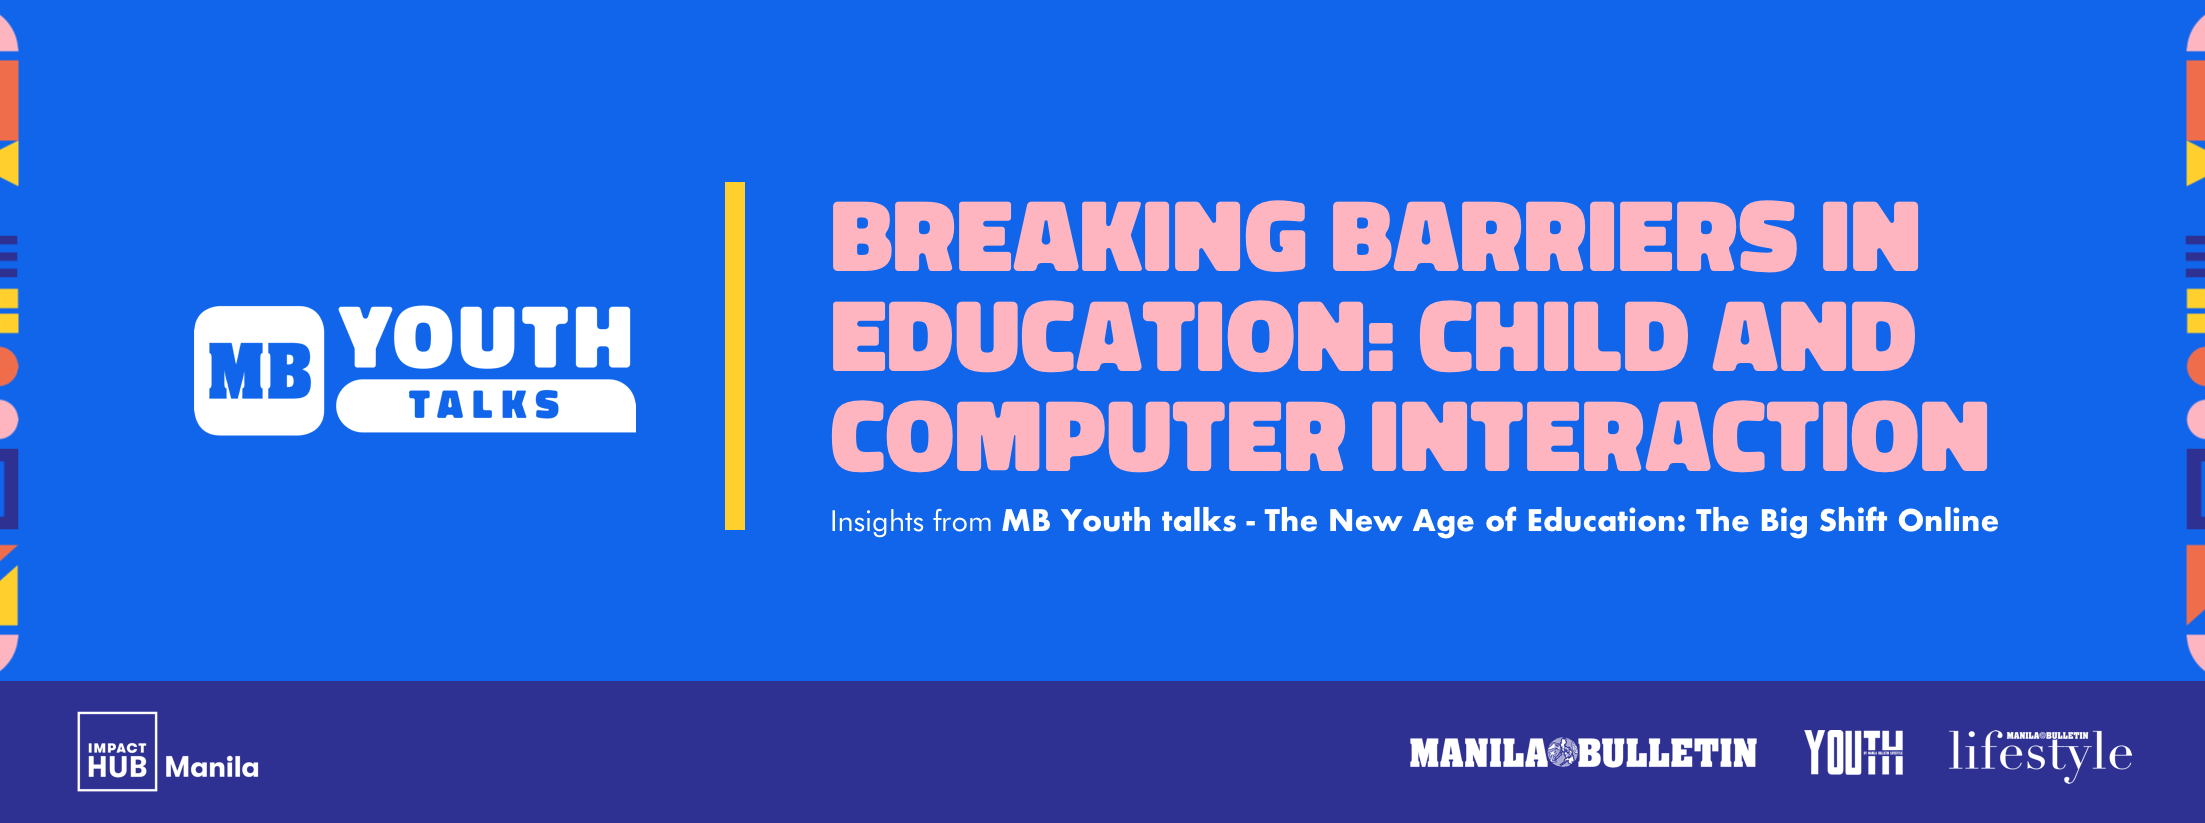 Breaking Barriers in Education: Child and Computer Interaction